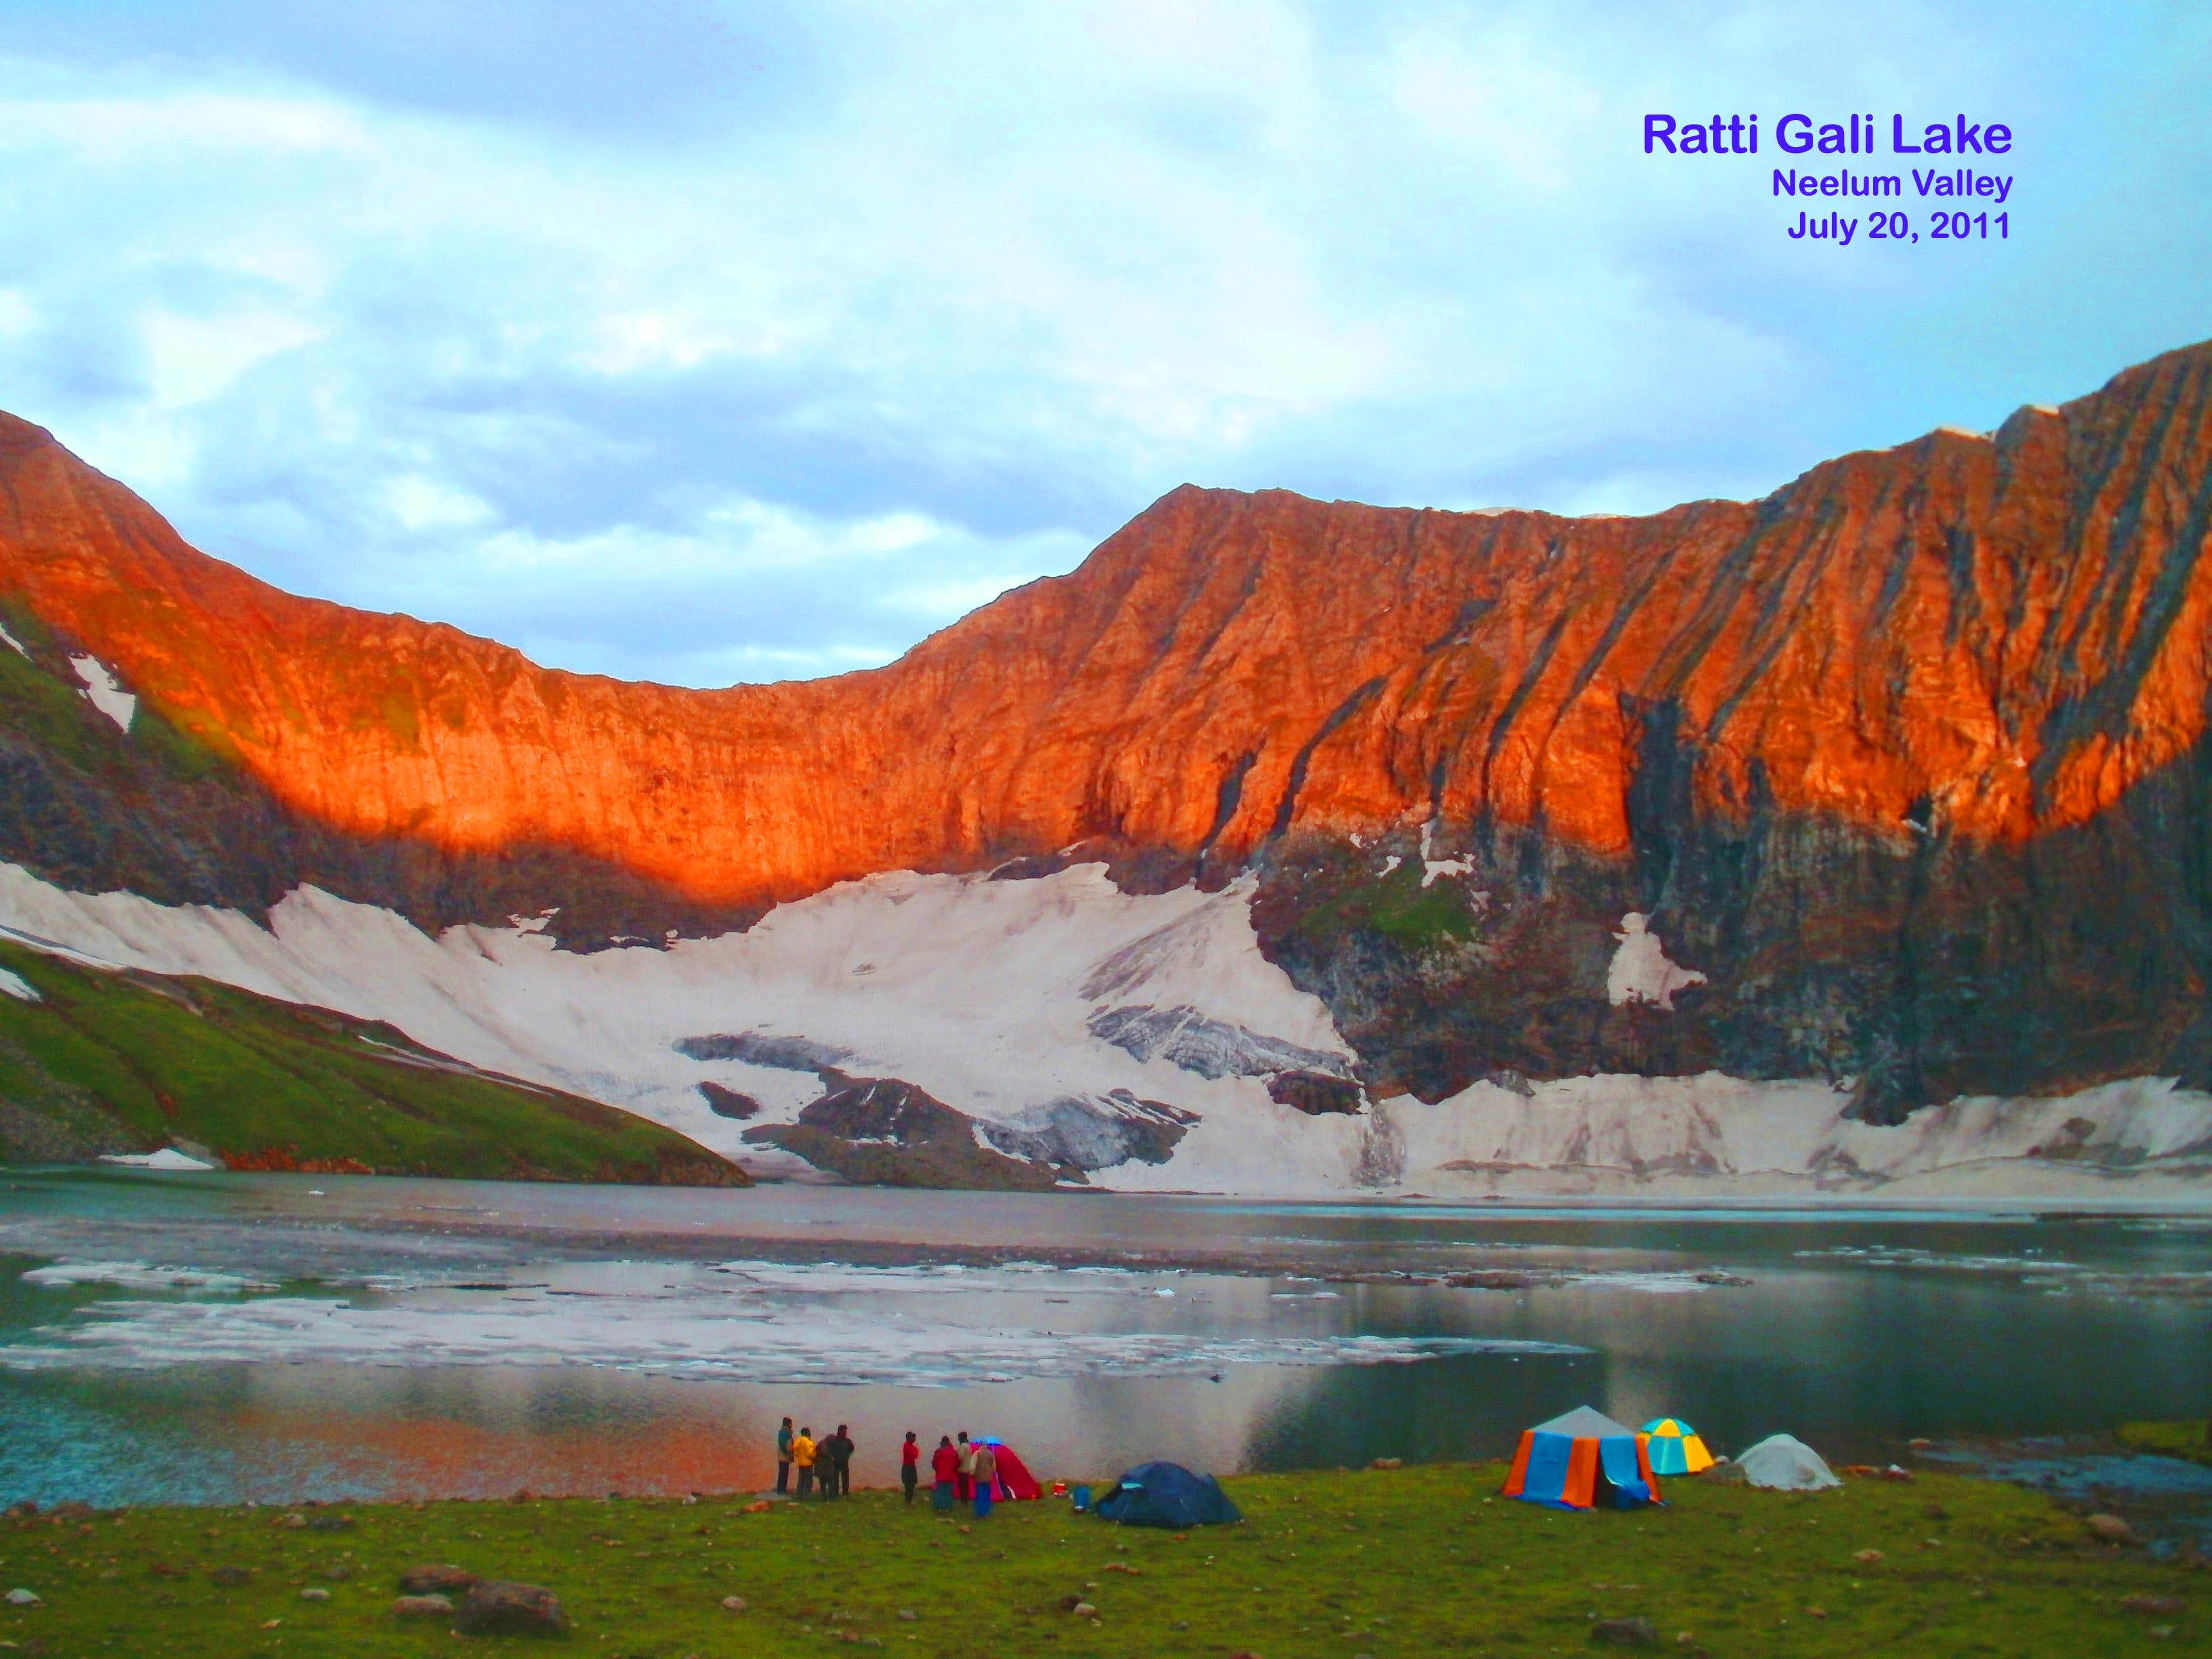 Ratti Gali Lake (Neelum Valley) Pakistan